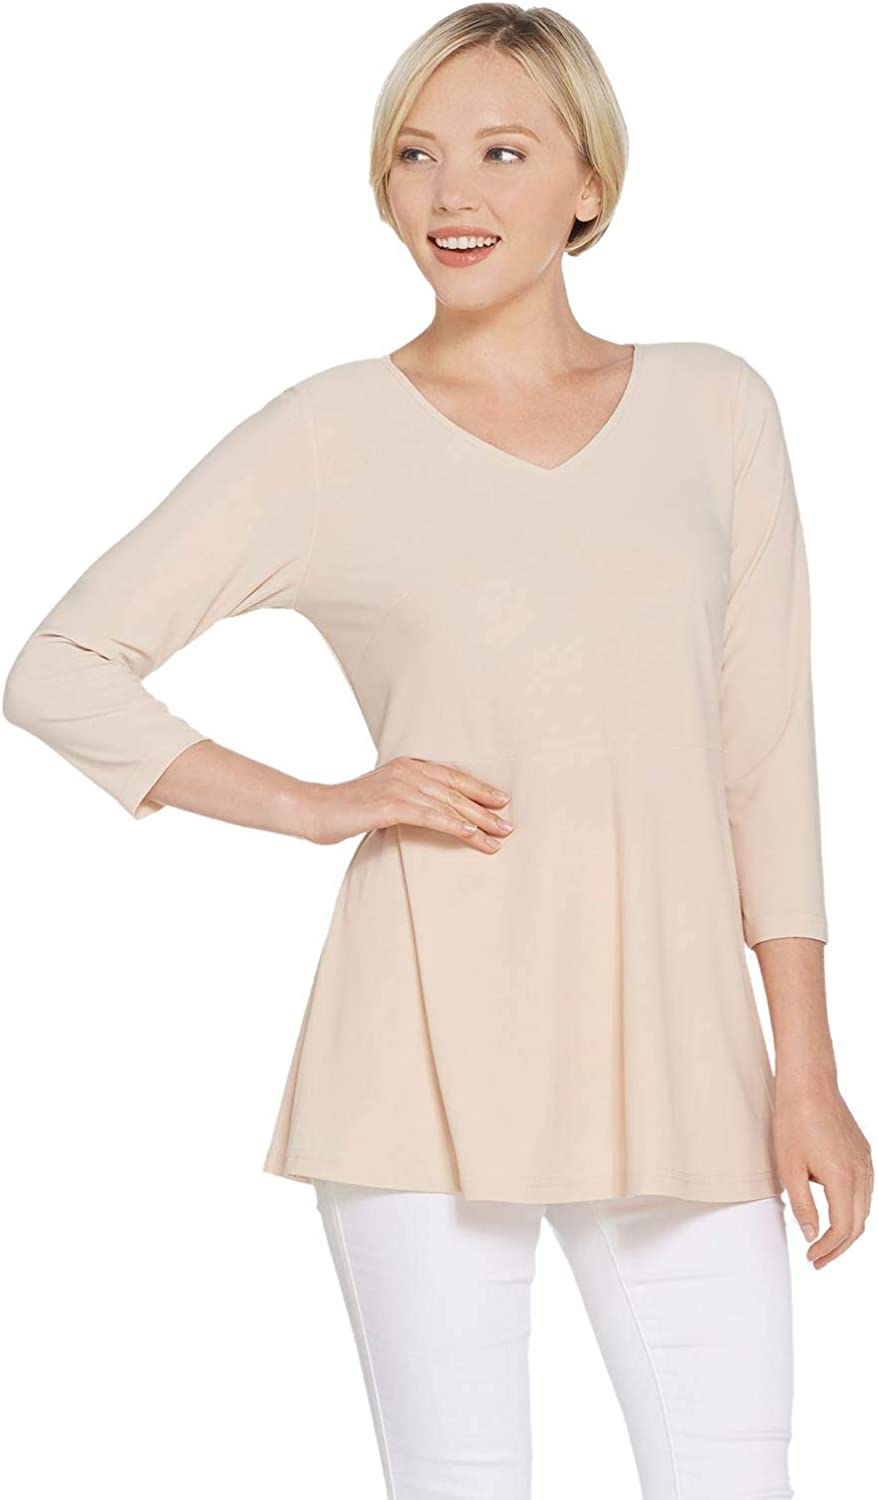 Linea by Louis Dell'Olio Womens Moss Crepe Peplum Detail Top M Alabaster A307191